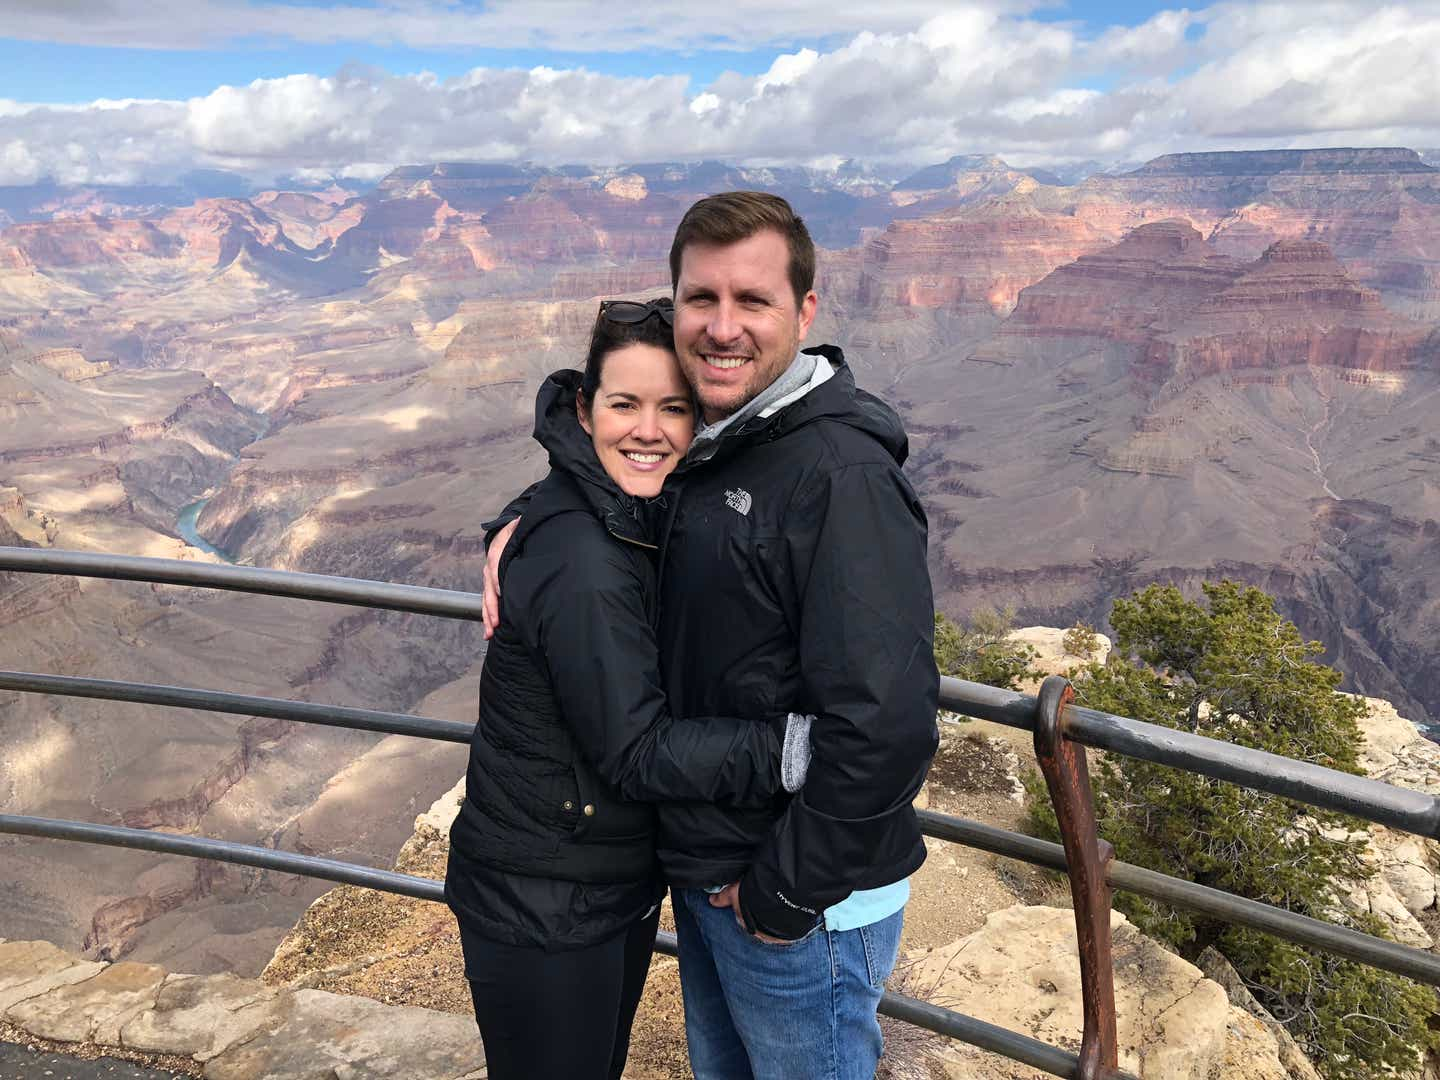 Jenn and her husband Anthony at the Grand Canyon